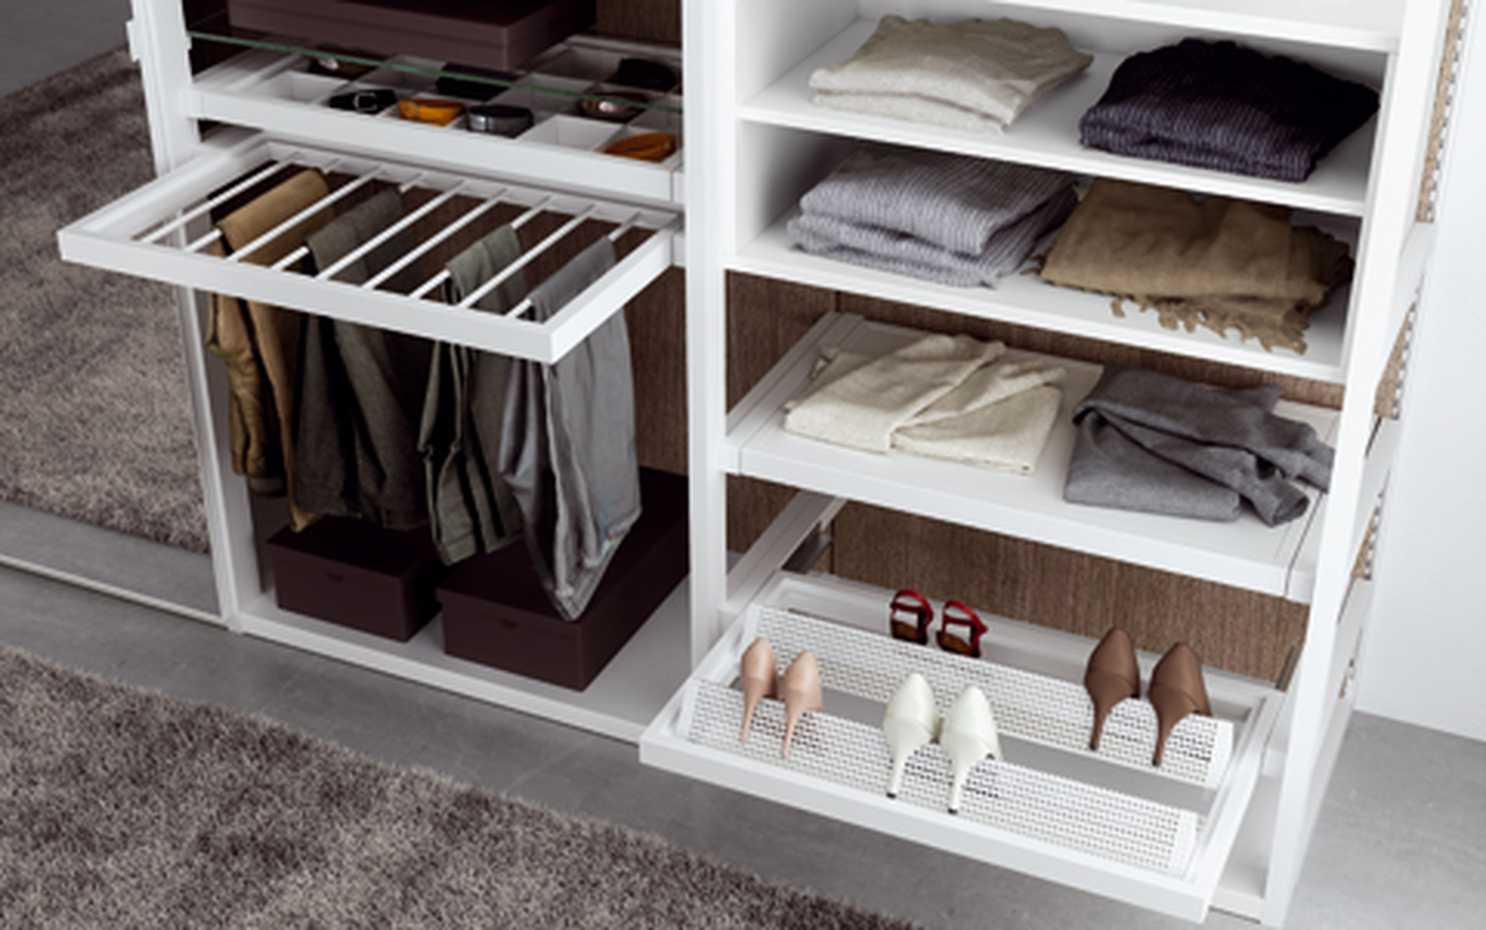 Walk-in Wardrobe with Framed Side by Mercantini product image 4